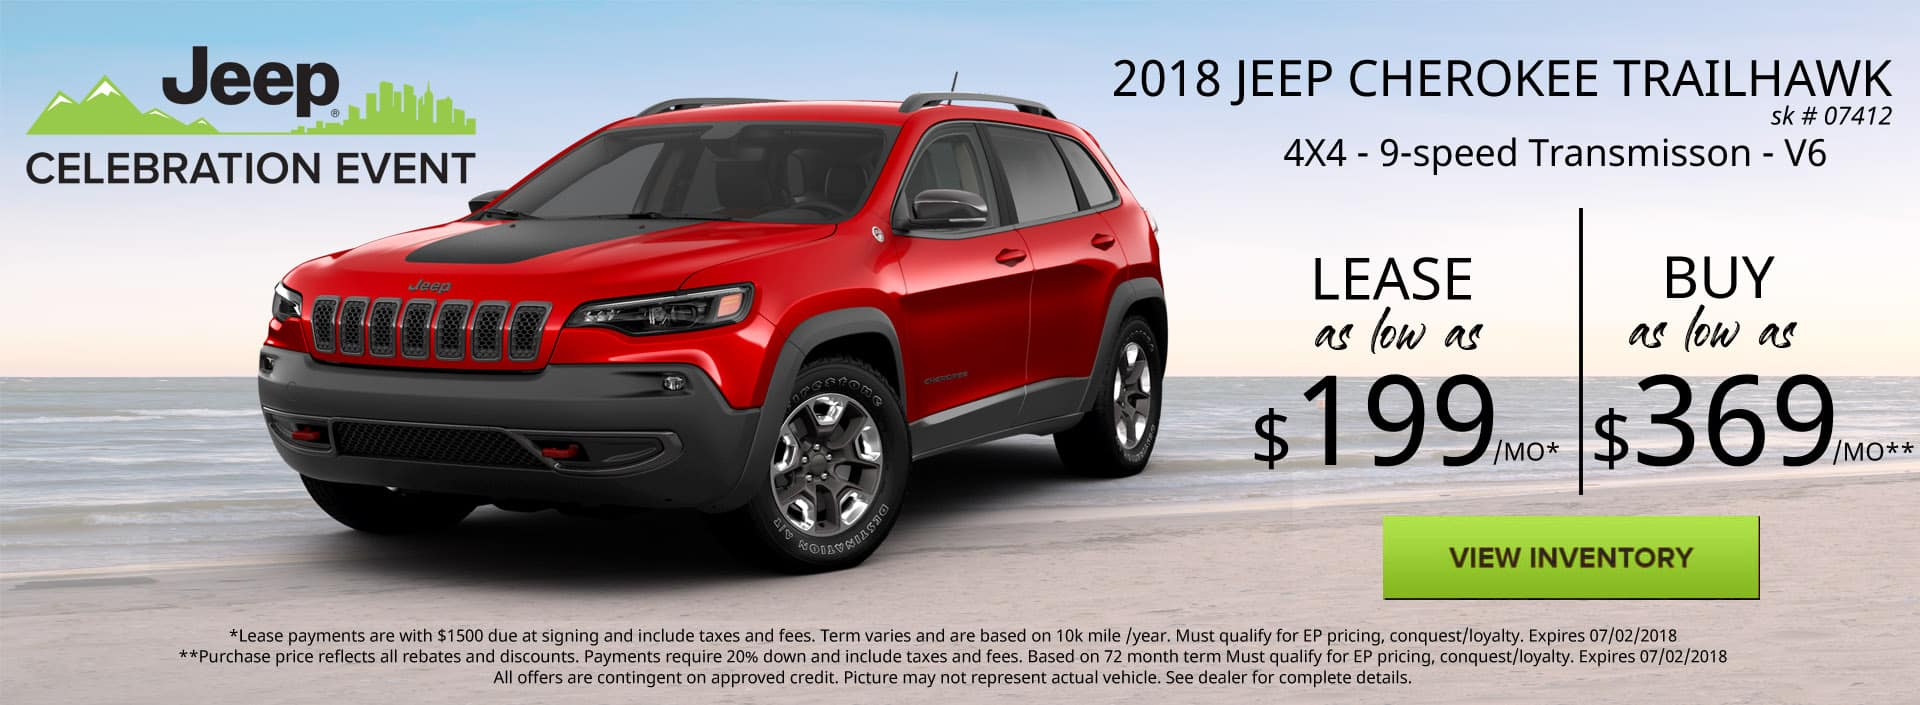 June 2018 Special Jeep Cherokee Trailhawk Special Discount